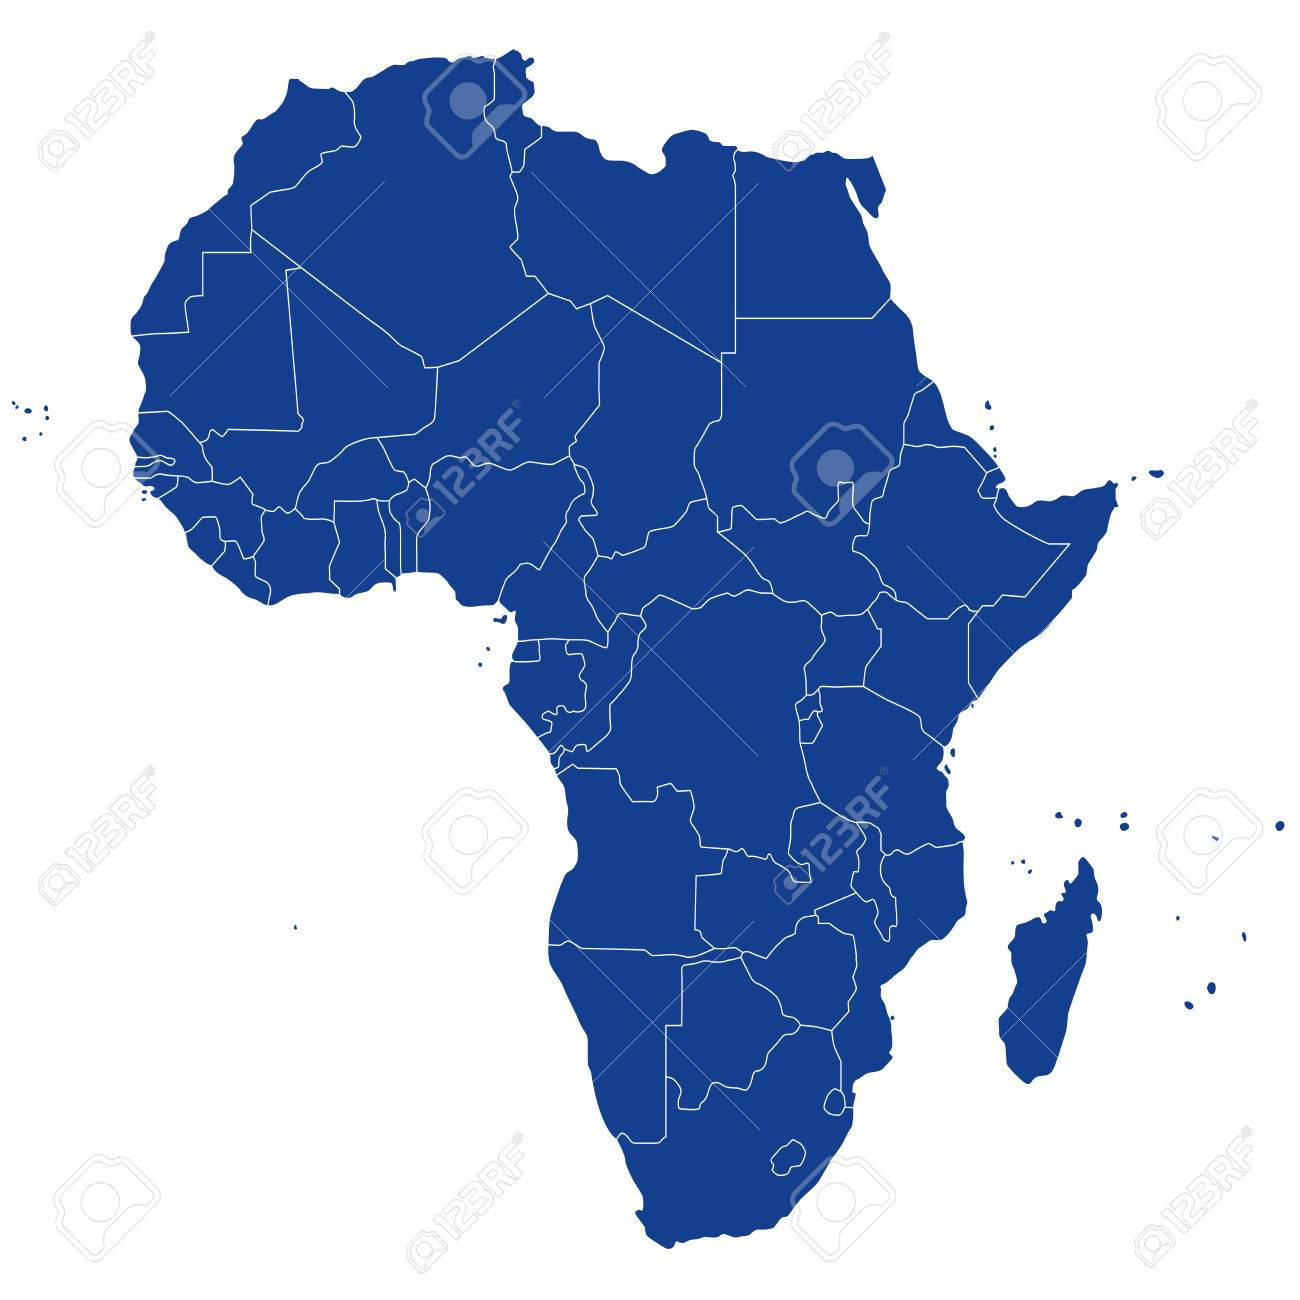 Highly Detailed Political Map Africa Royalty Free Cliparts Vectors